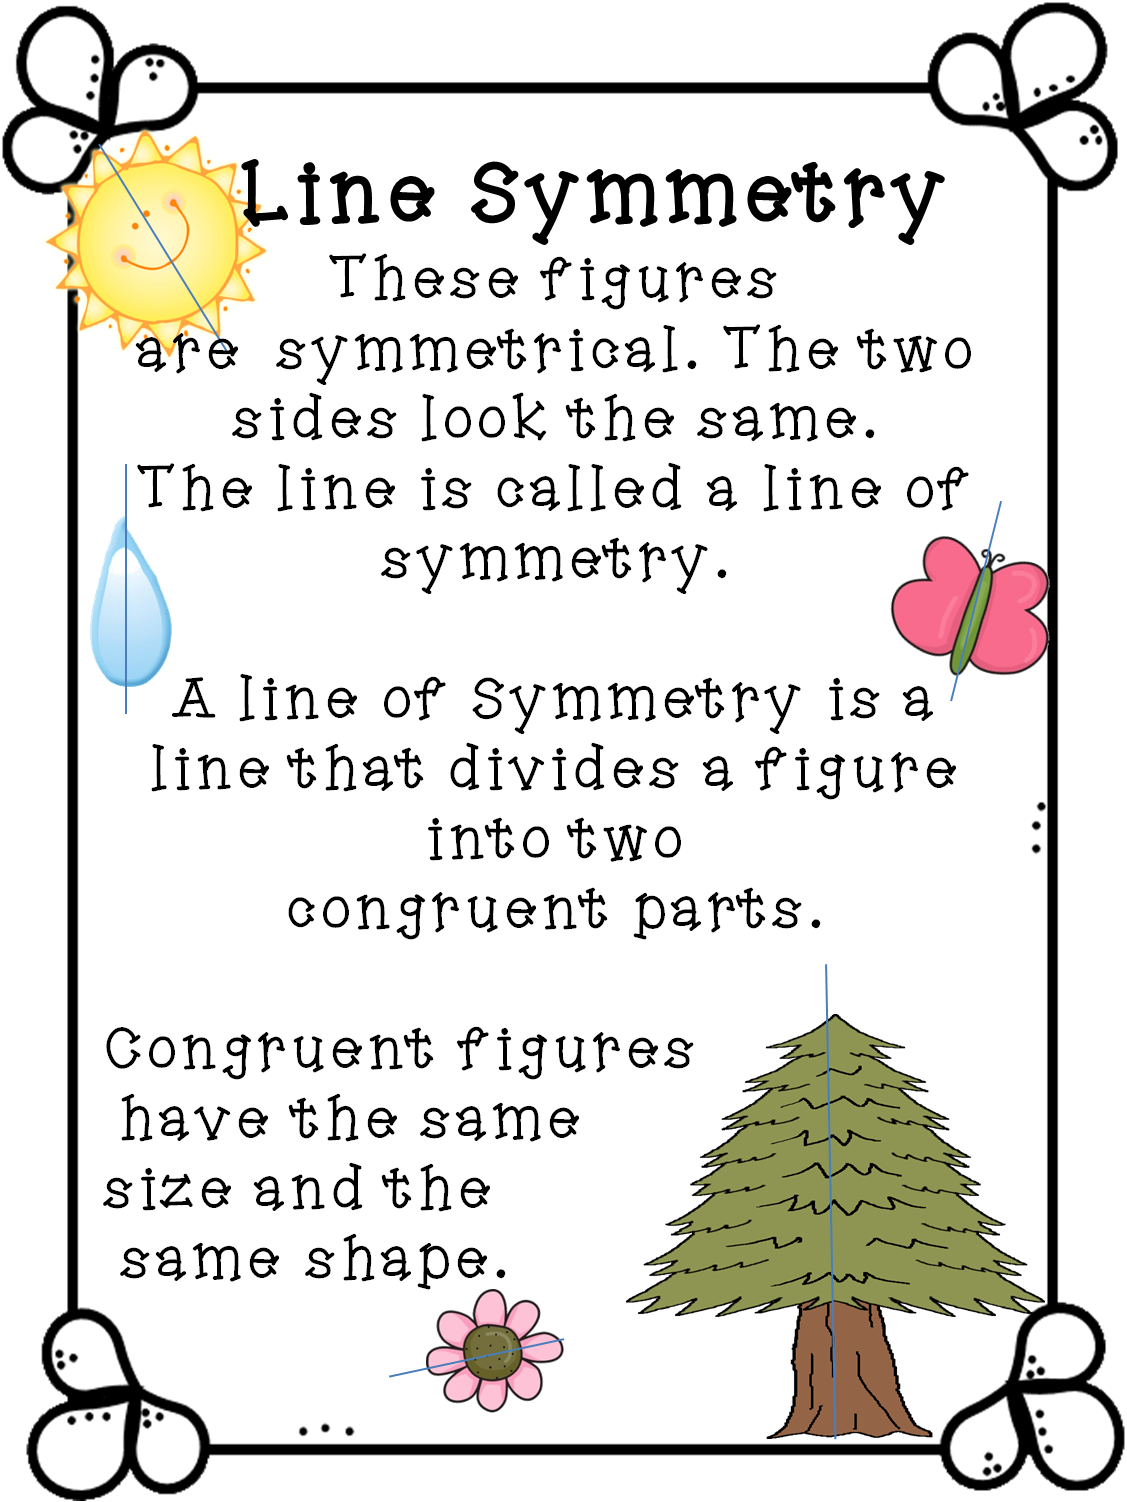 Worksheet Math Definition For Kids equal shmequal first grade wow bloglovin for your 20 page symmetry unit free click here we had a great day hope you an equally thanks stopping by peek i